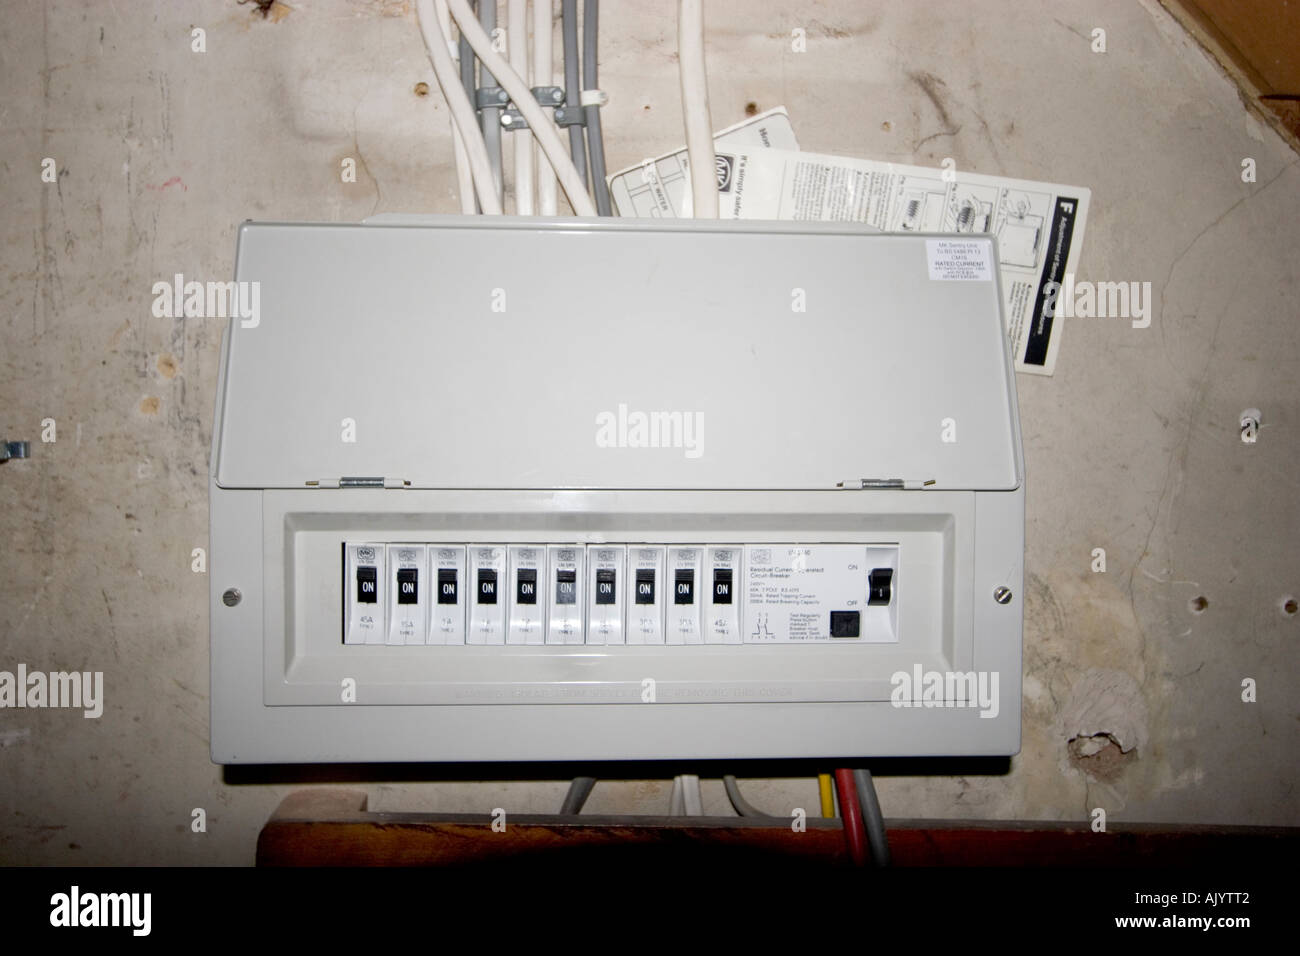 Fuse Box House Wiring Library Older Electrical Boxes Fusebox Stock Photos Images Alamy Old Home Diagram